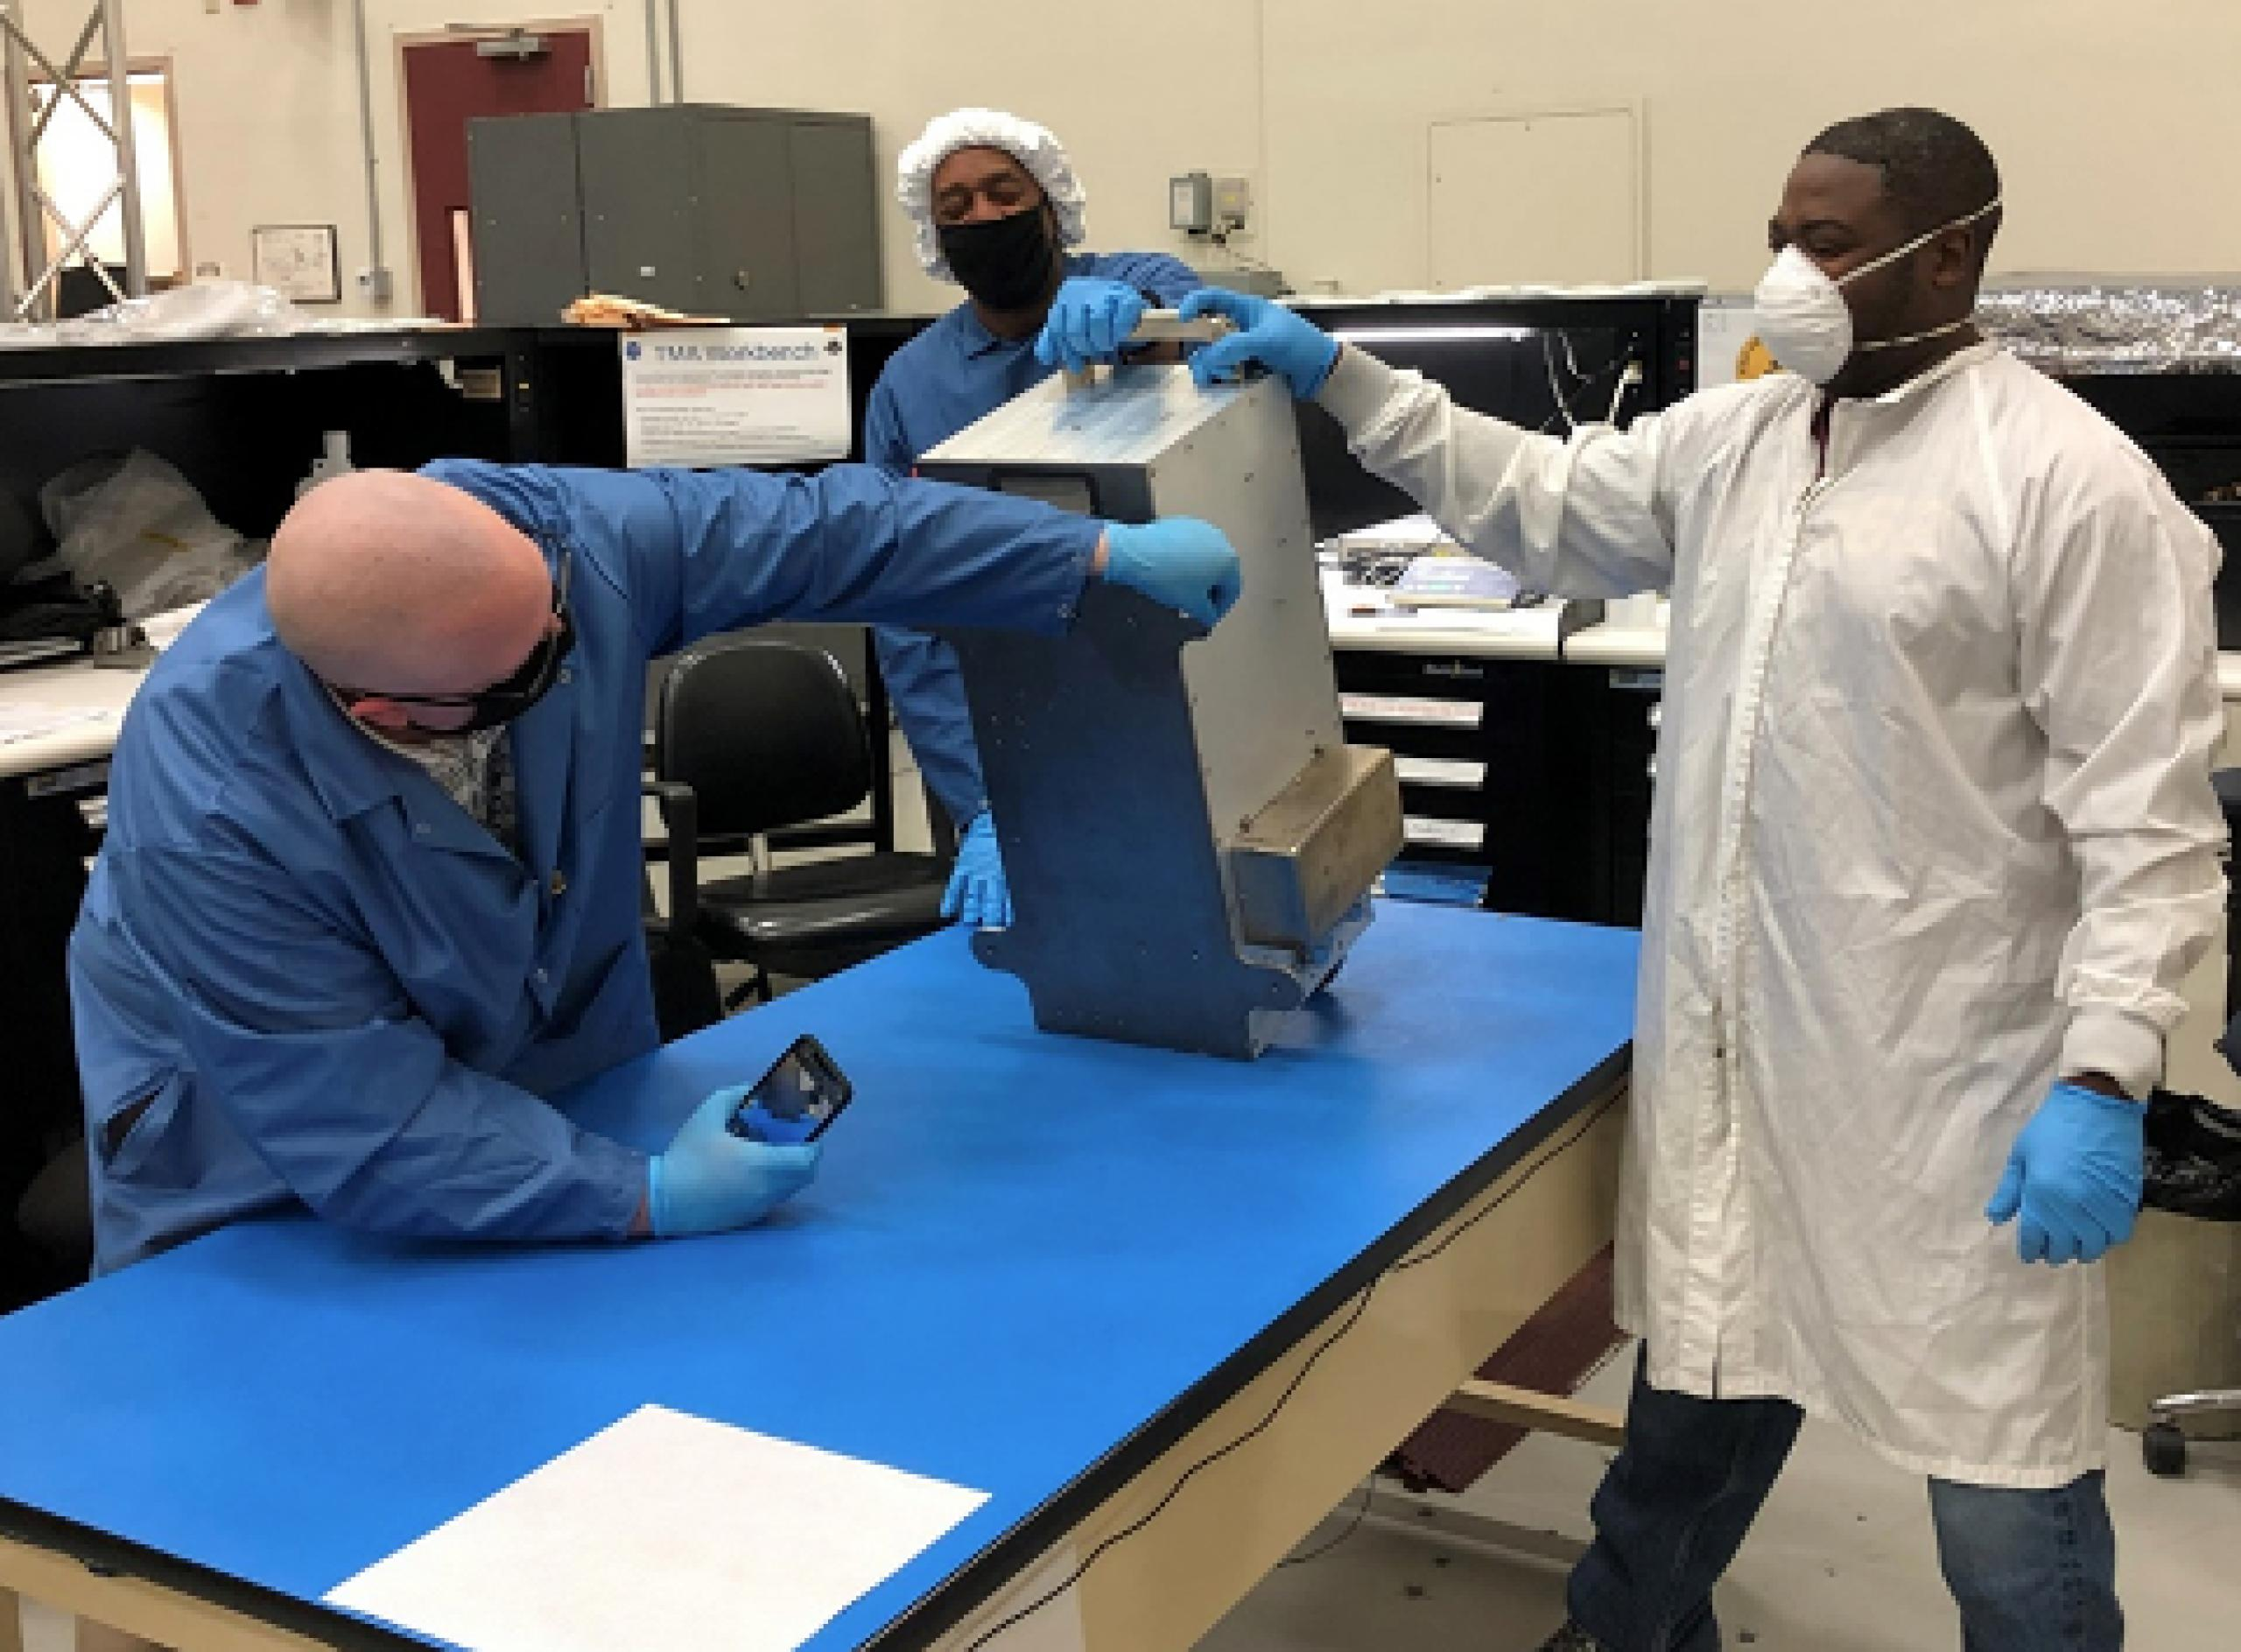 A metal mechanical box sits at an angle on a table, as three individuals - wearing gloves, lab coats and face masks - examine the box by touching the surface and photographing the box.